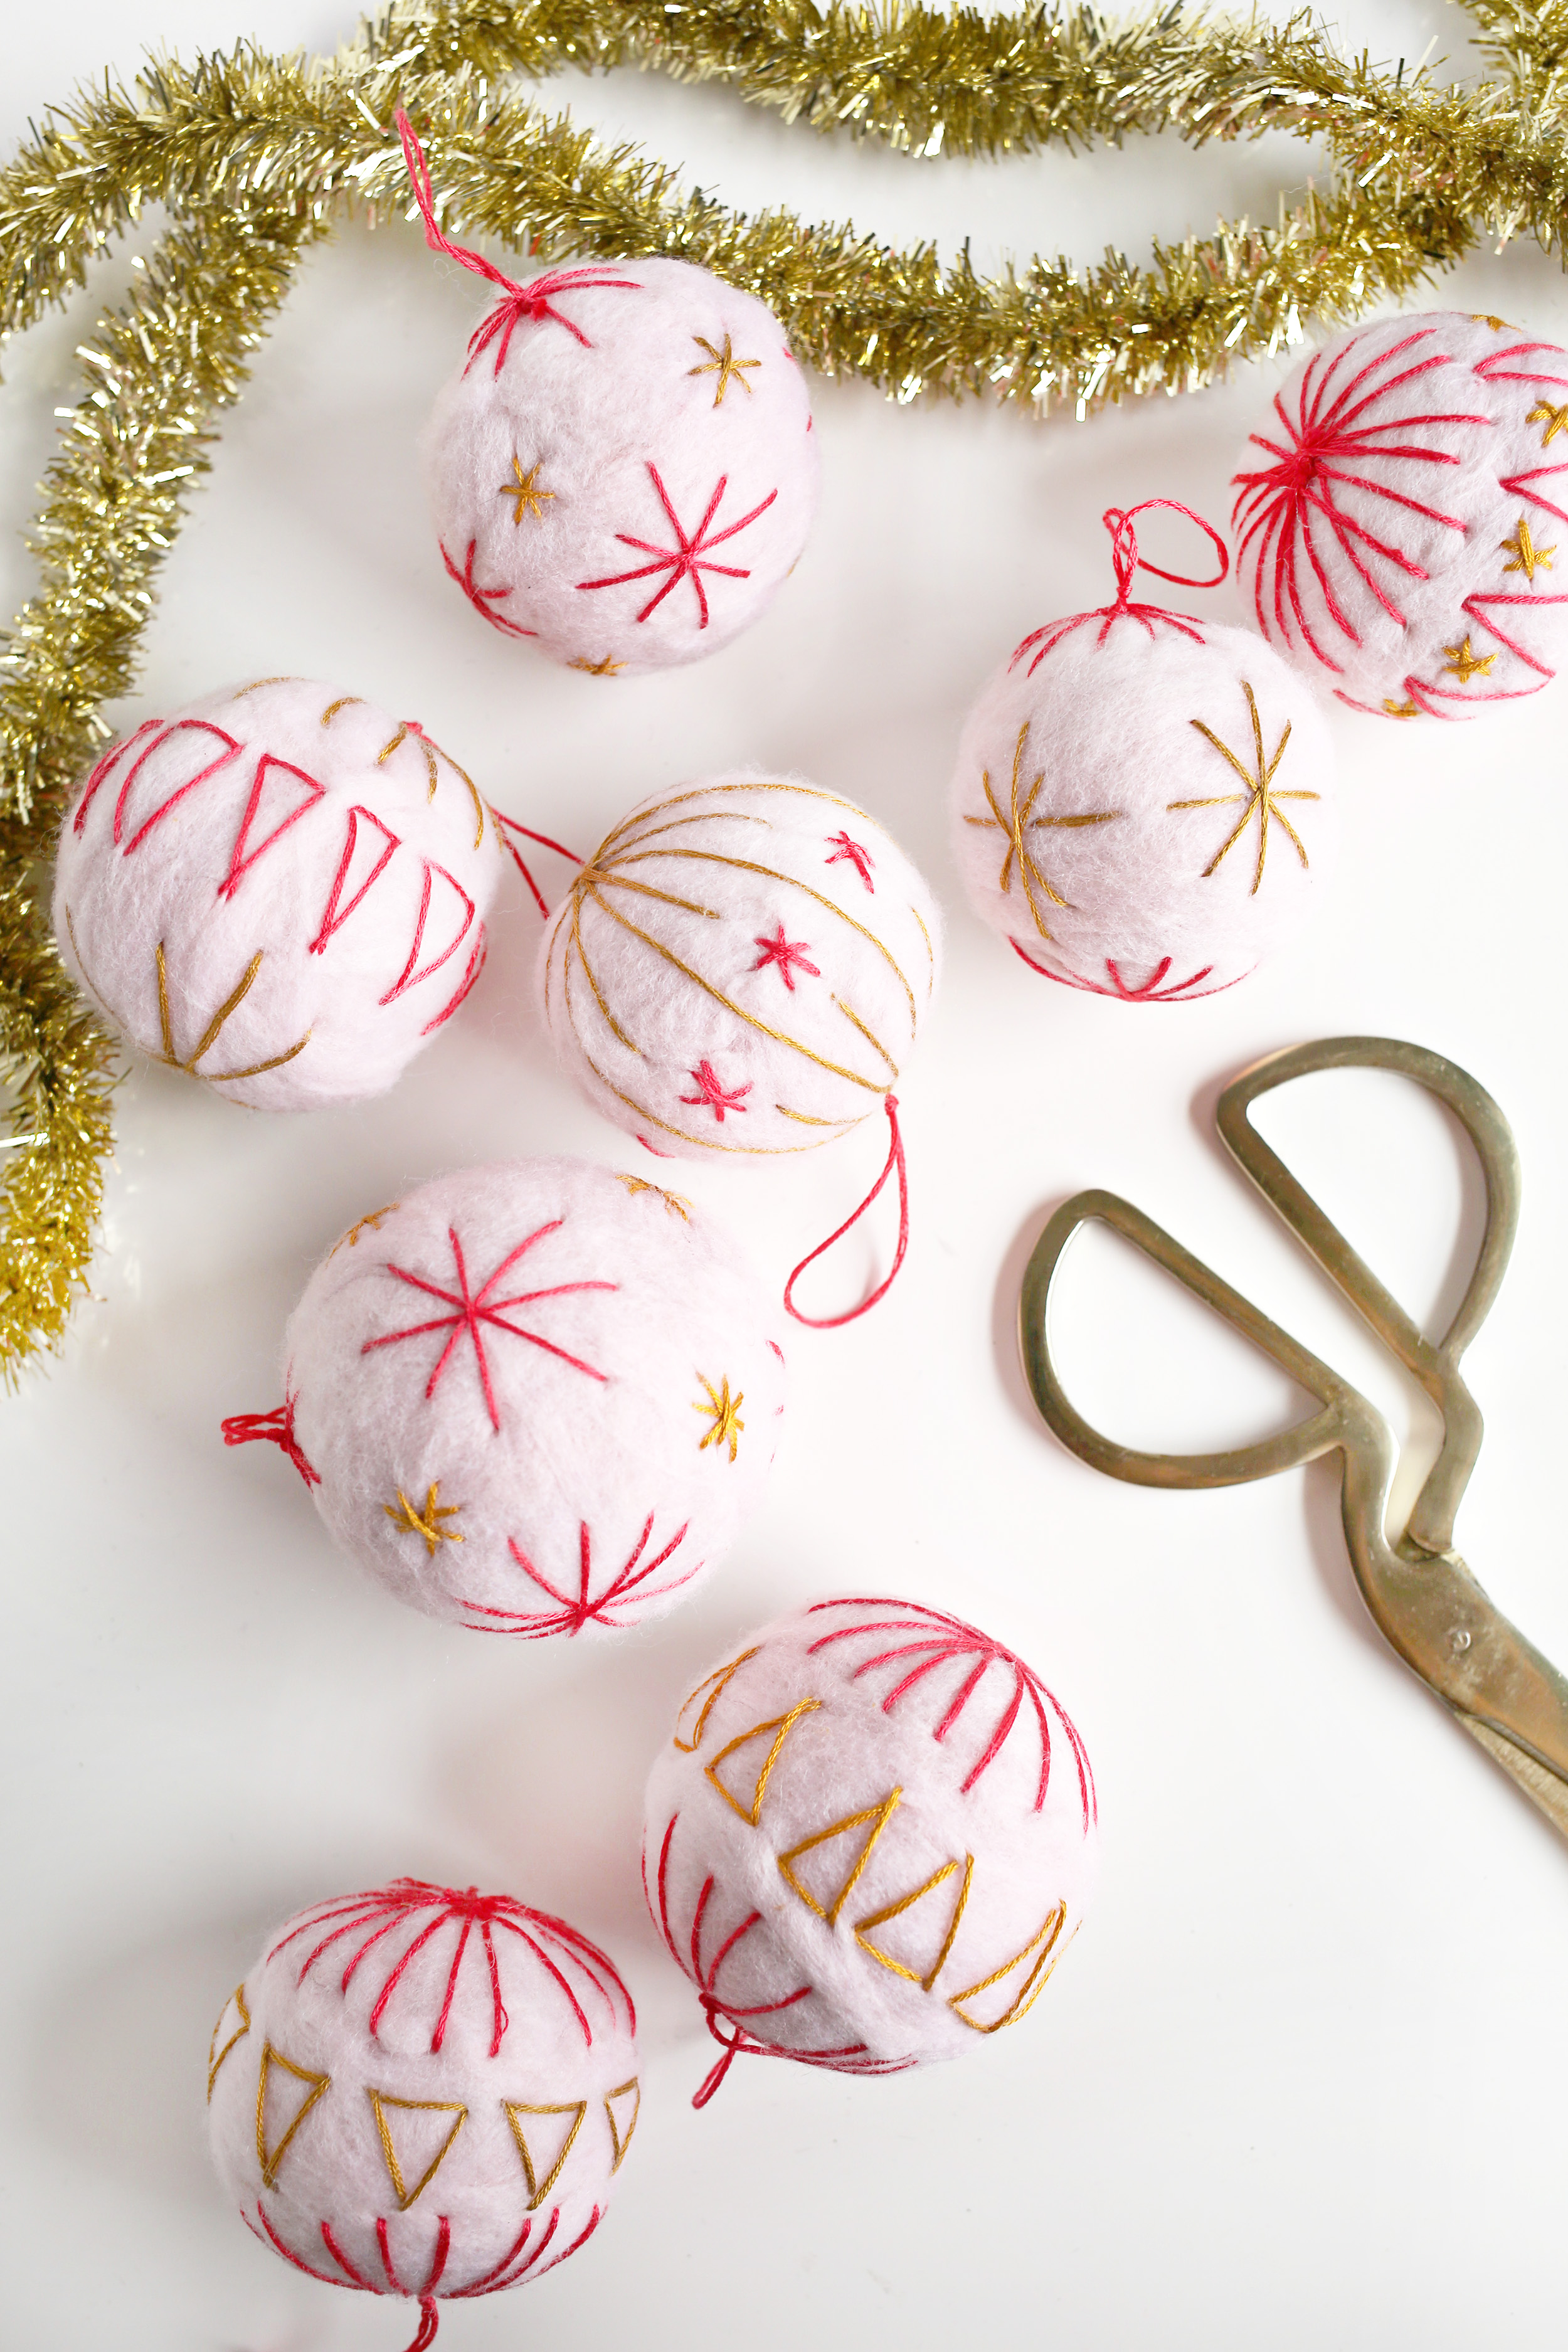 Create special wool ornaments for your Christmas tree this year with this easy tutorial from Spiegeling